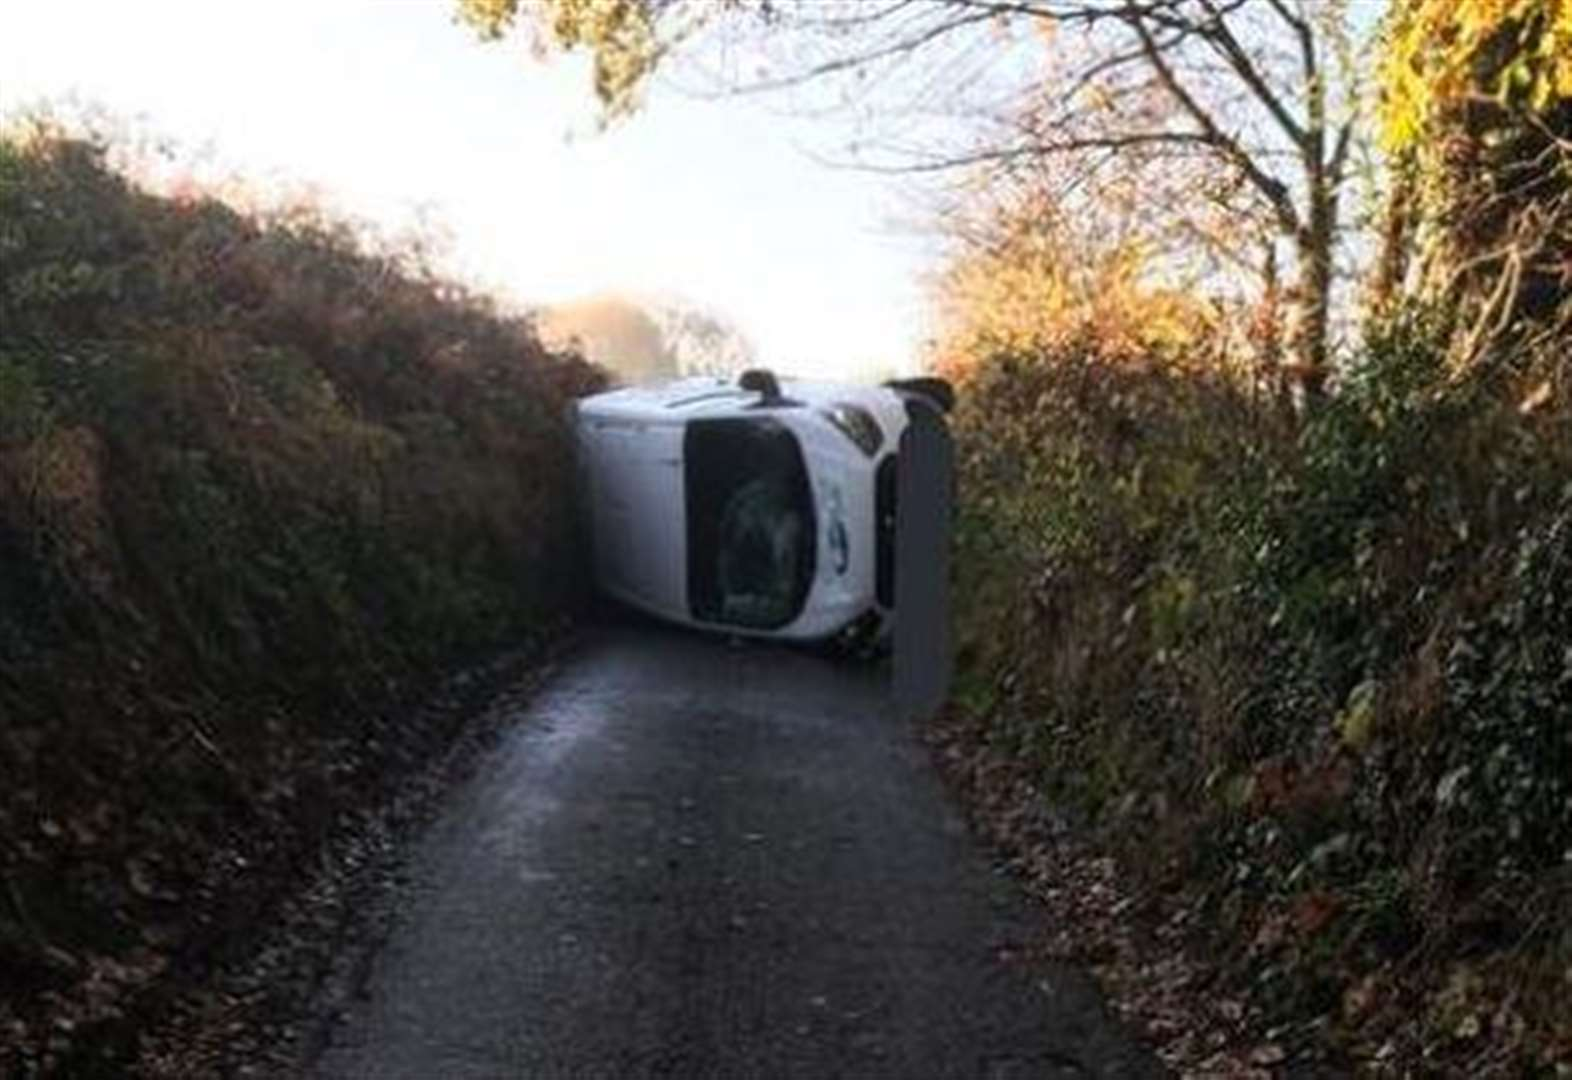 Van flips in crash on country road